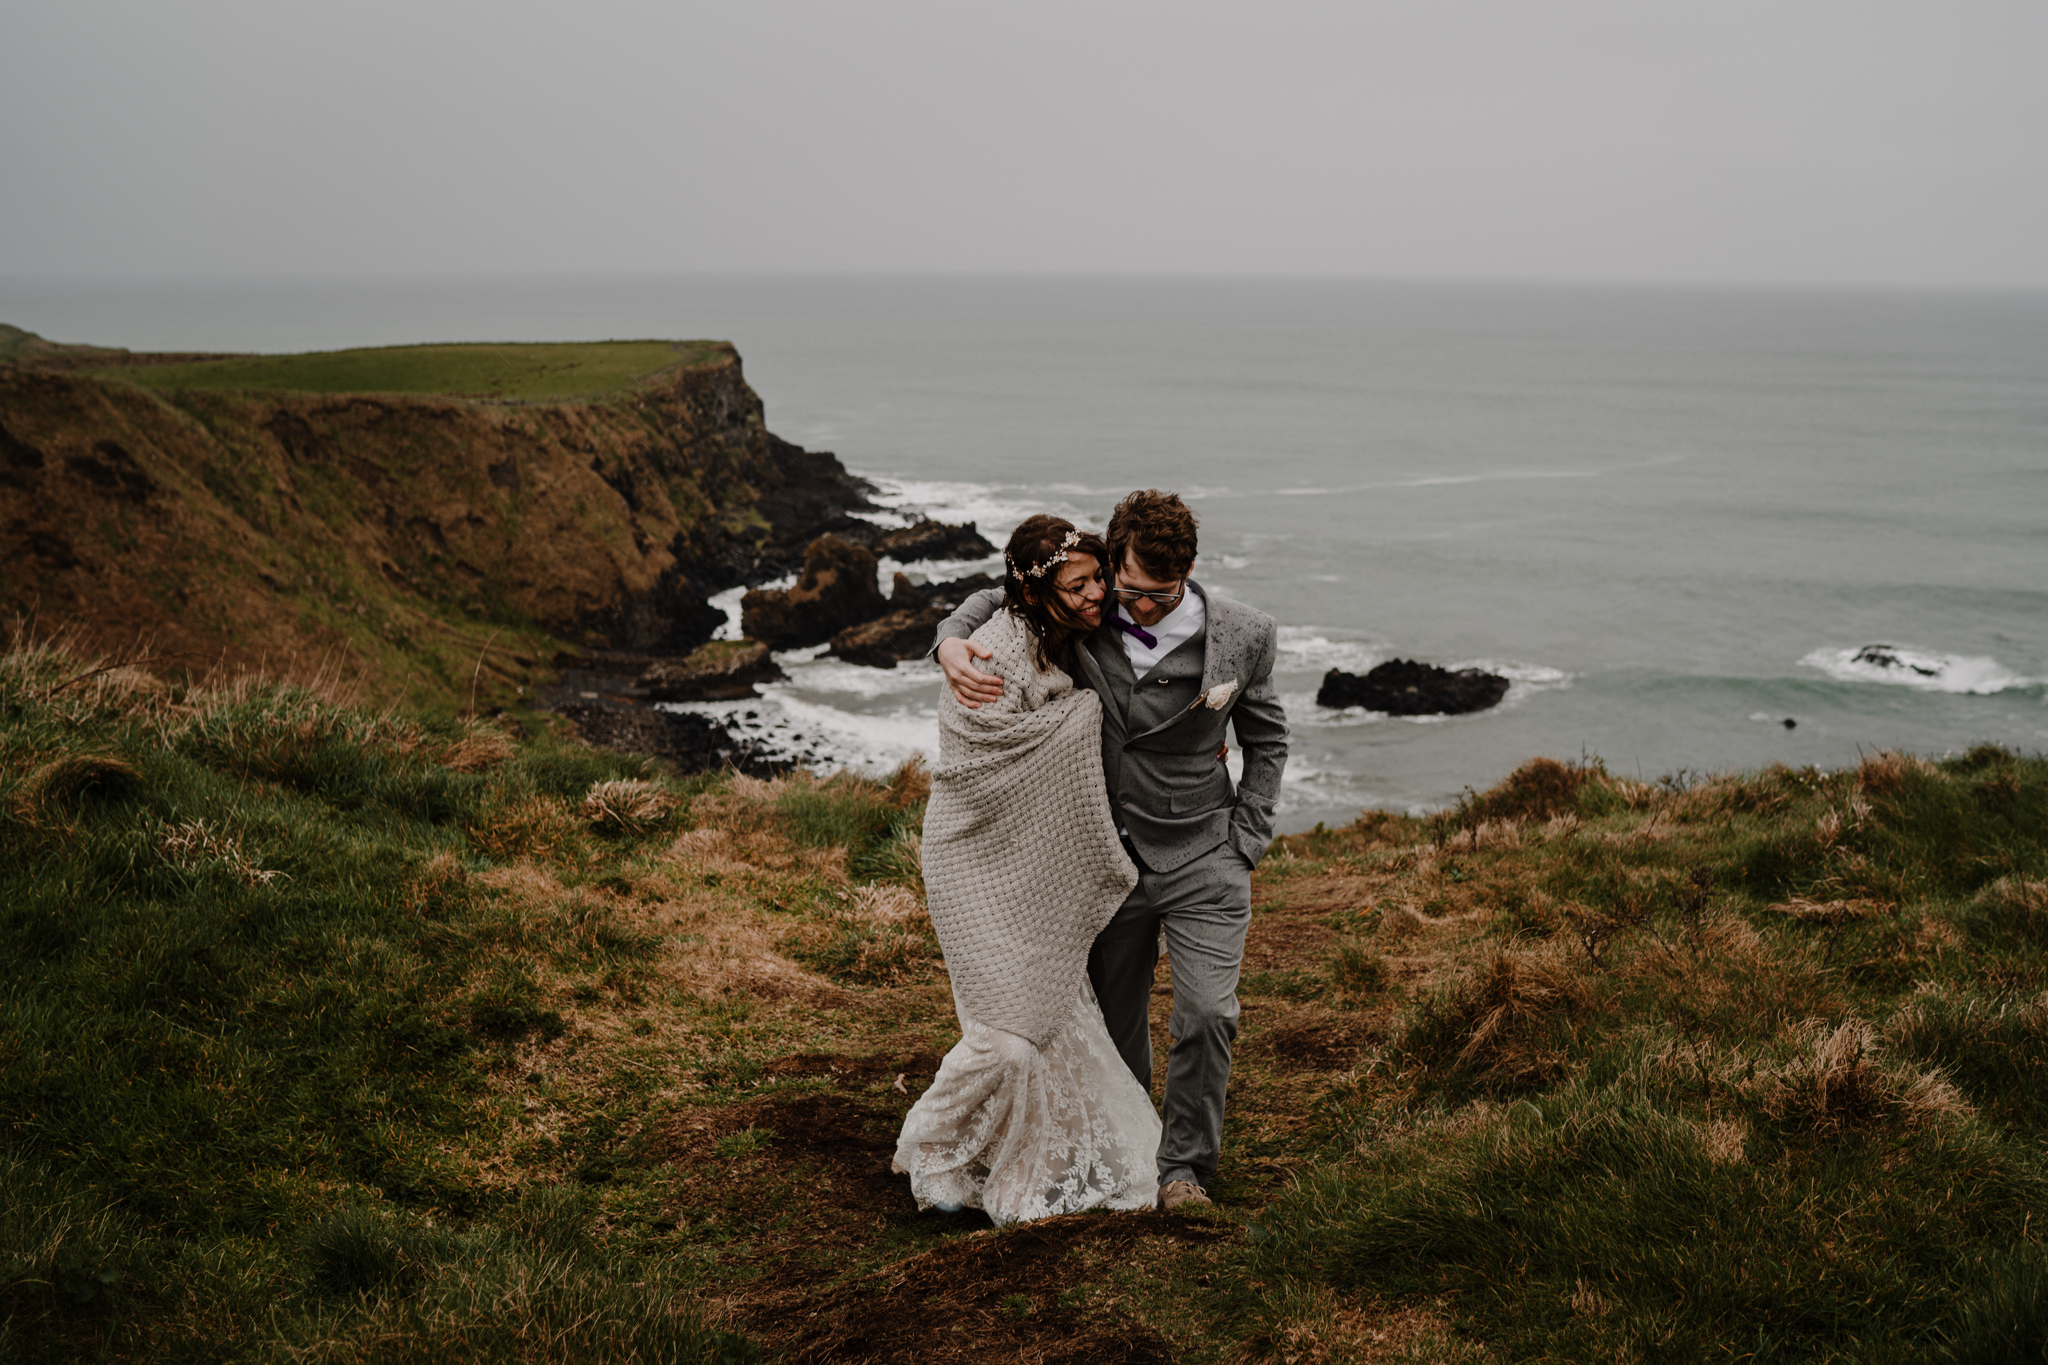 stunning locations to elope on the causeway coast The giants Causeway